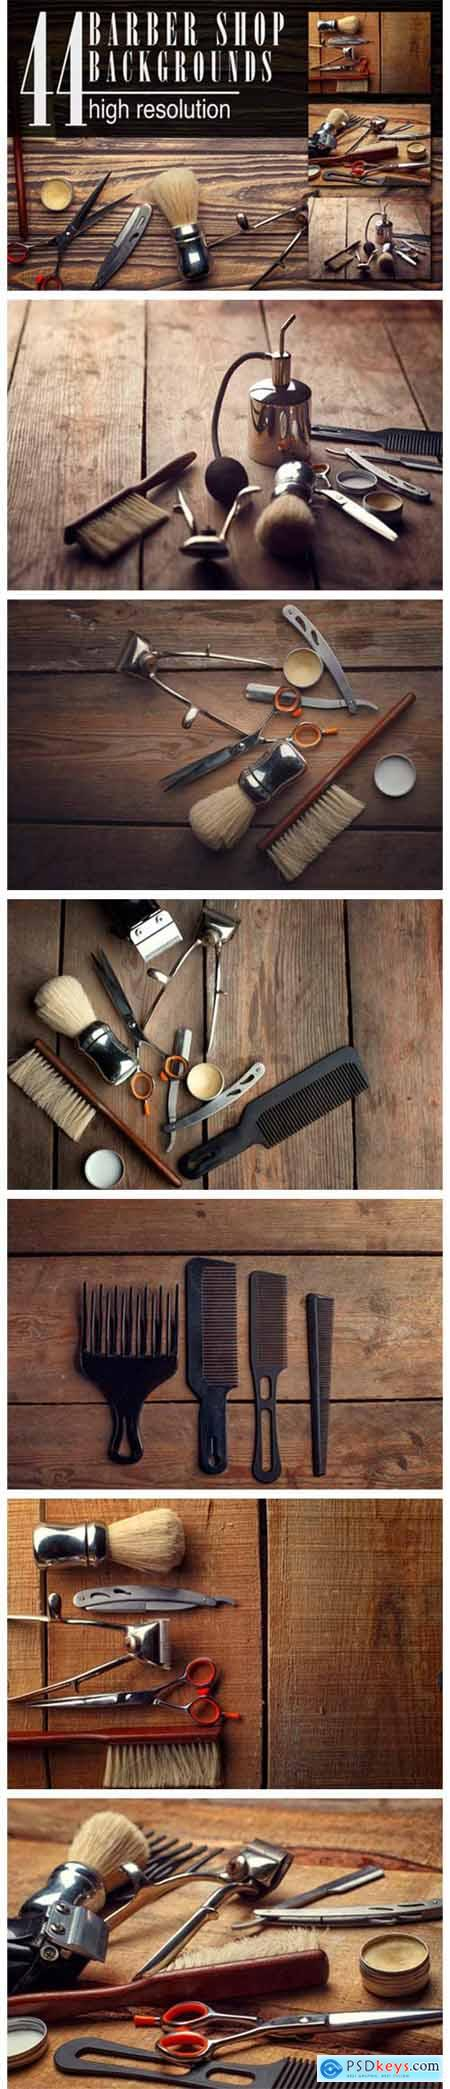 Barber Shop Wooden Backgrounds 4756322